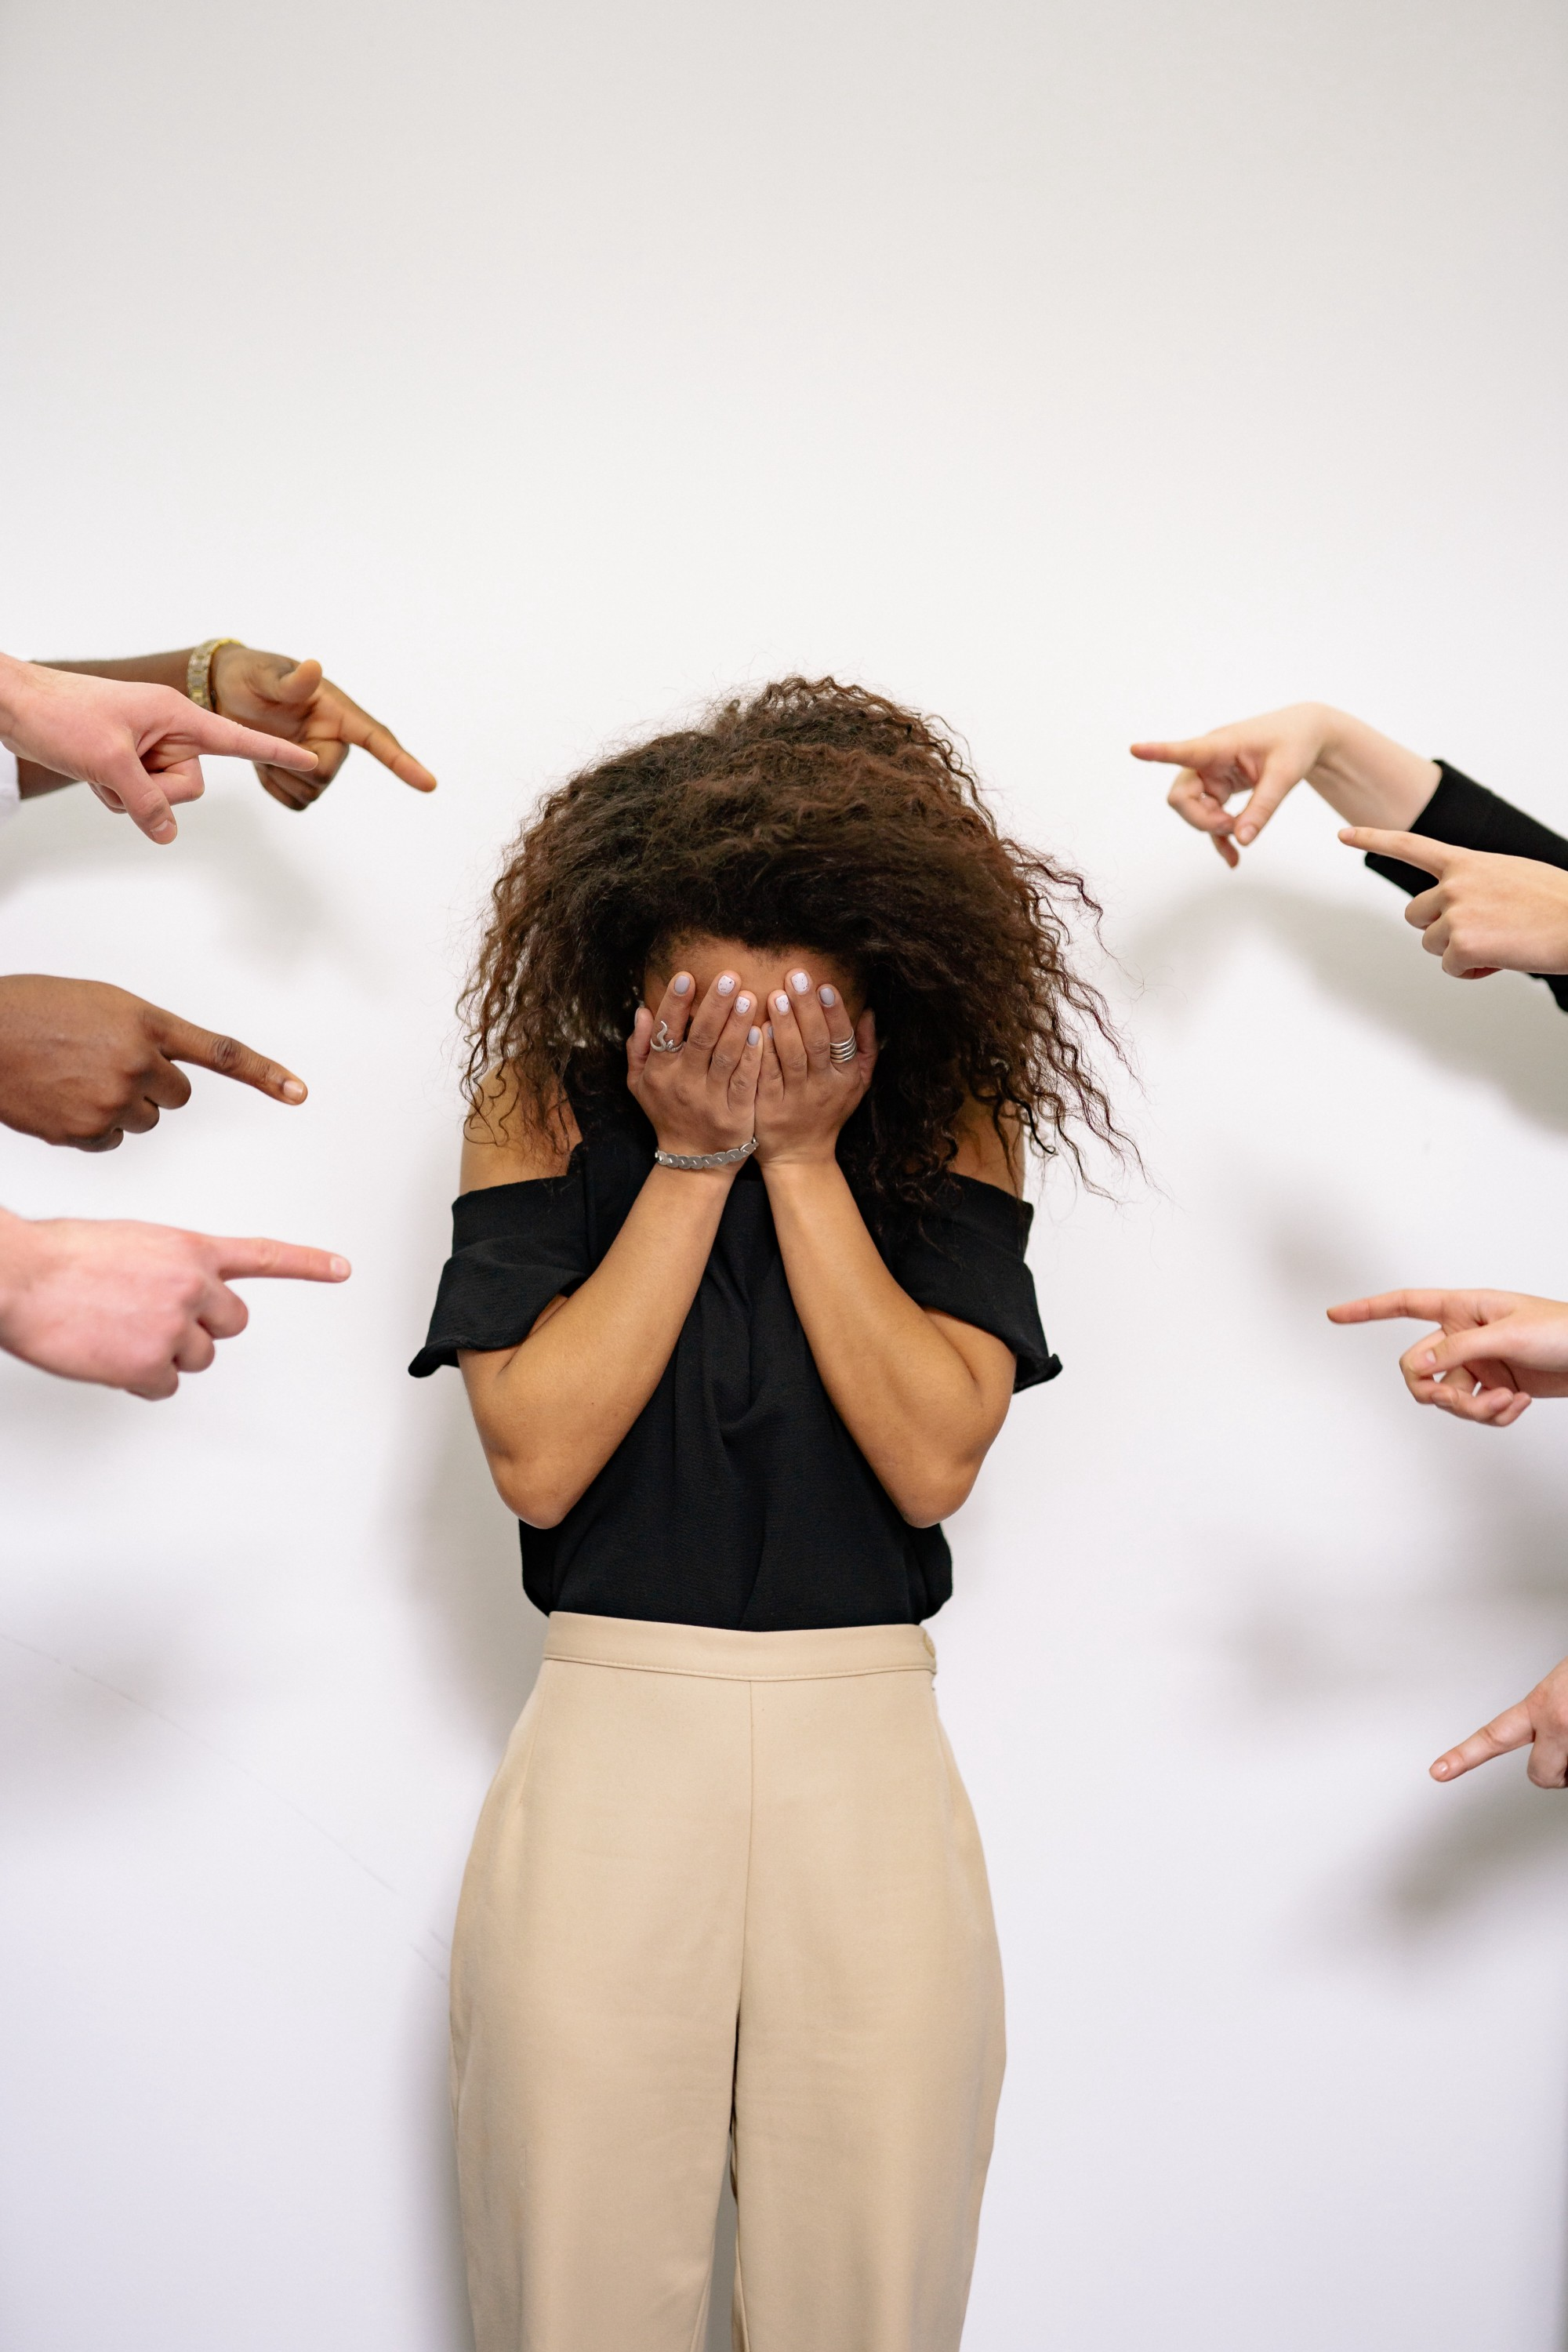 A woman of color covering her face with several people pointing fingers at her.